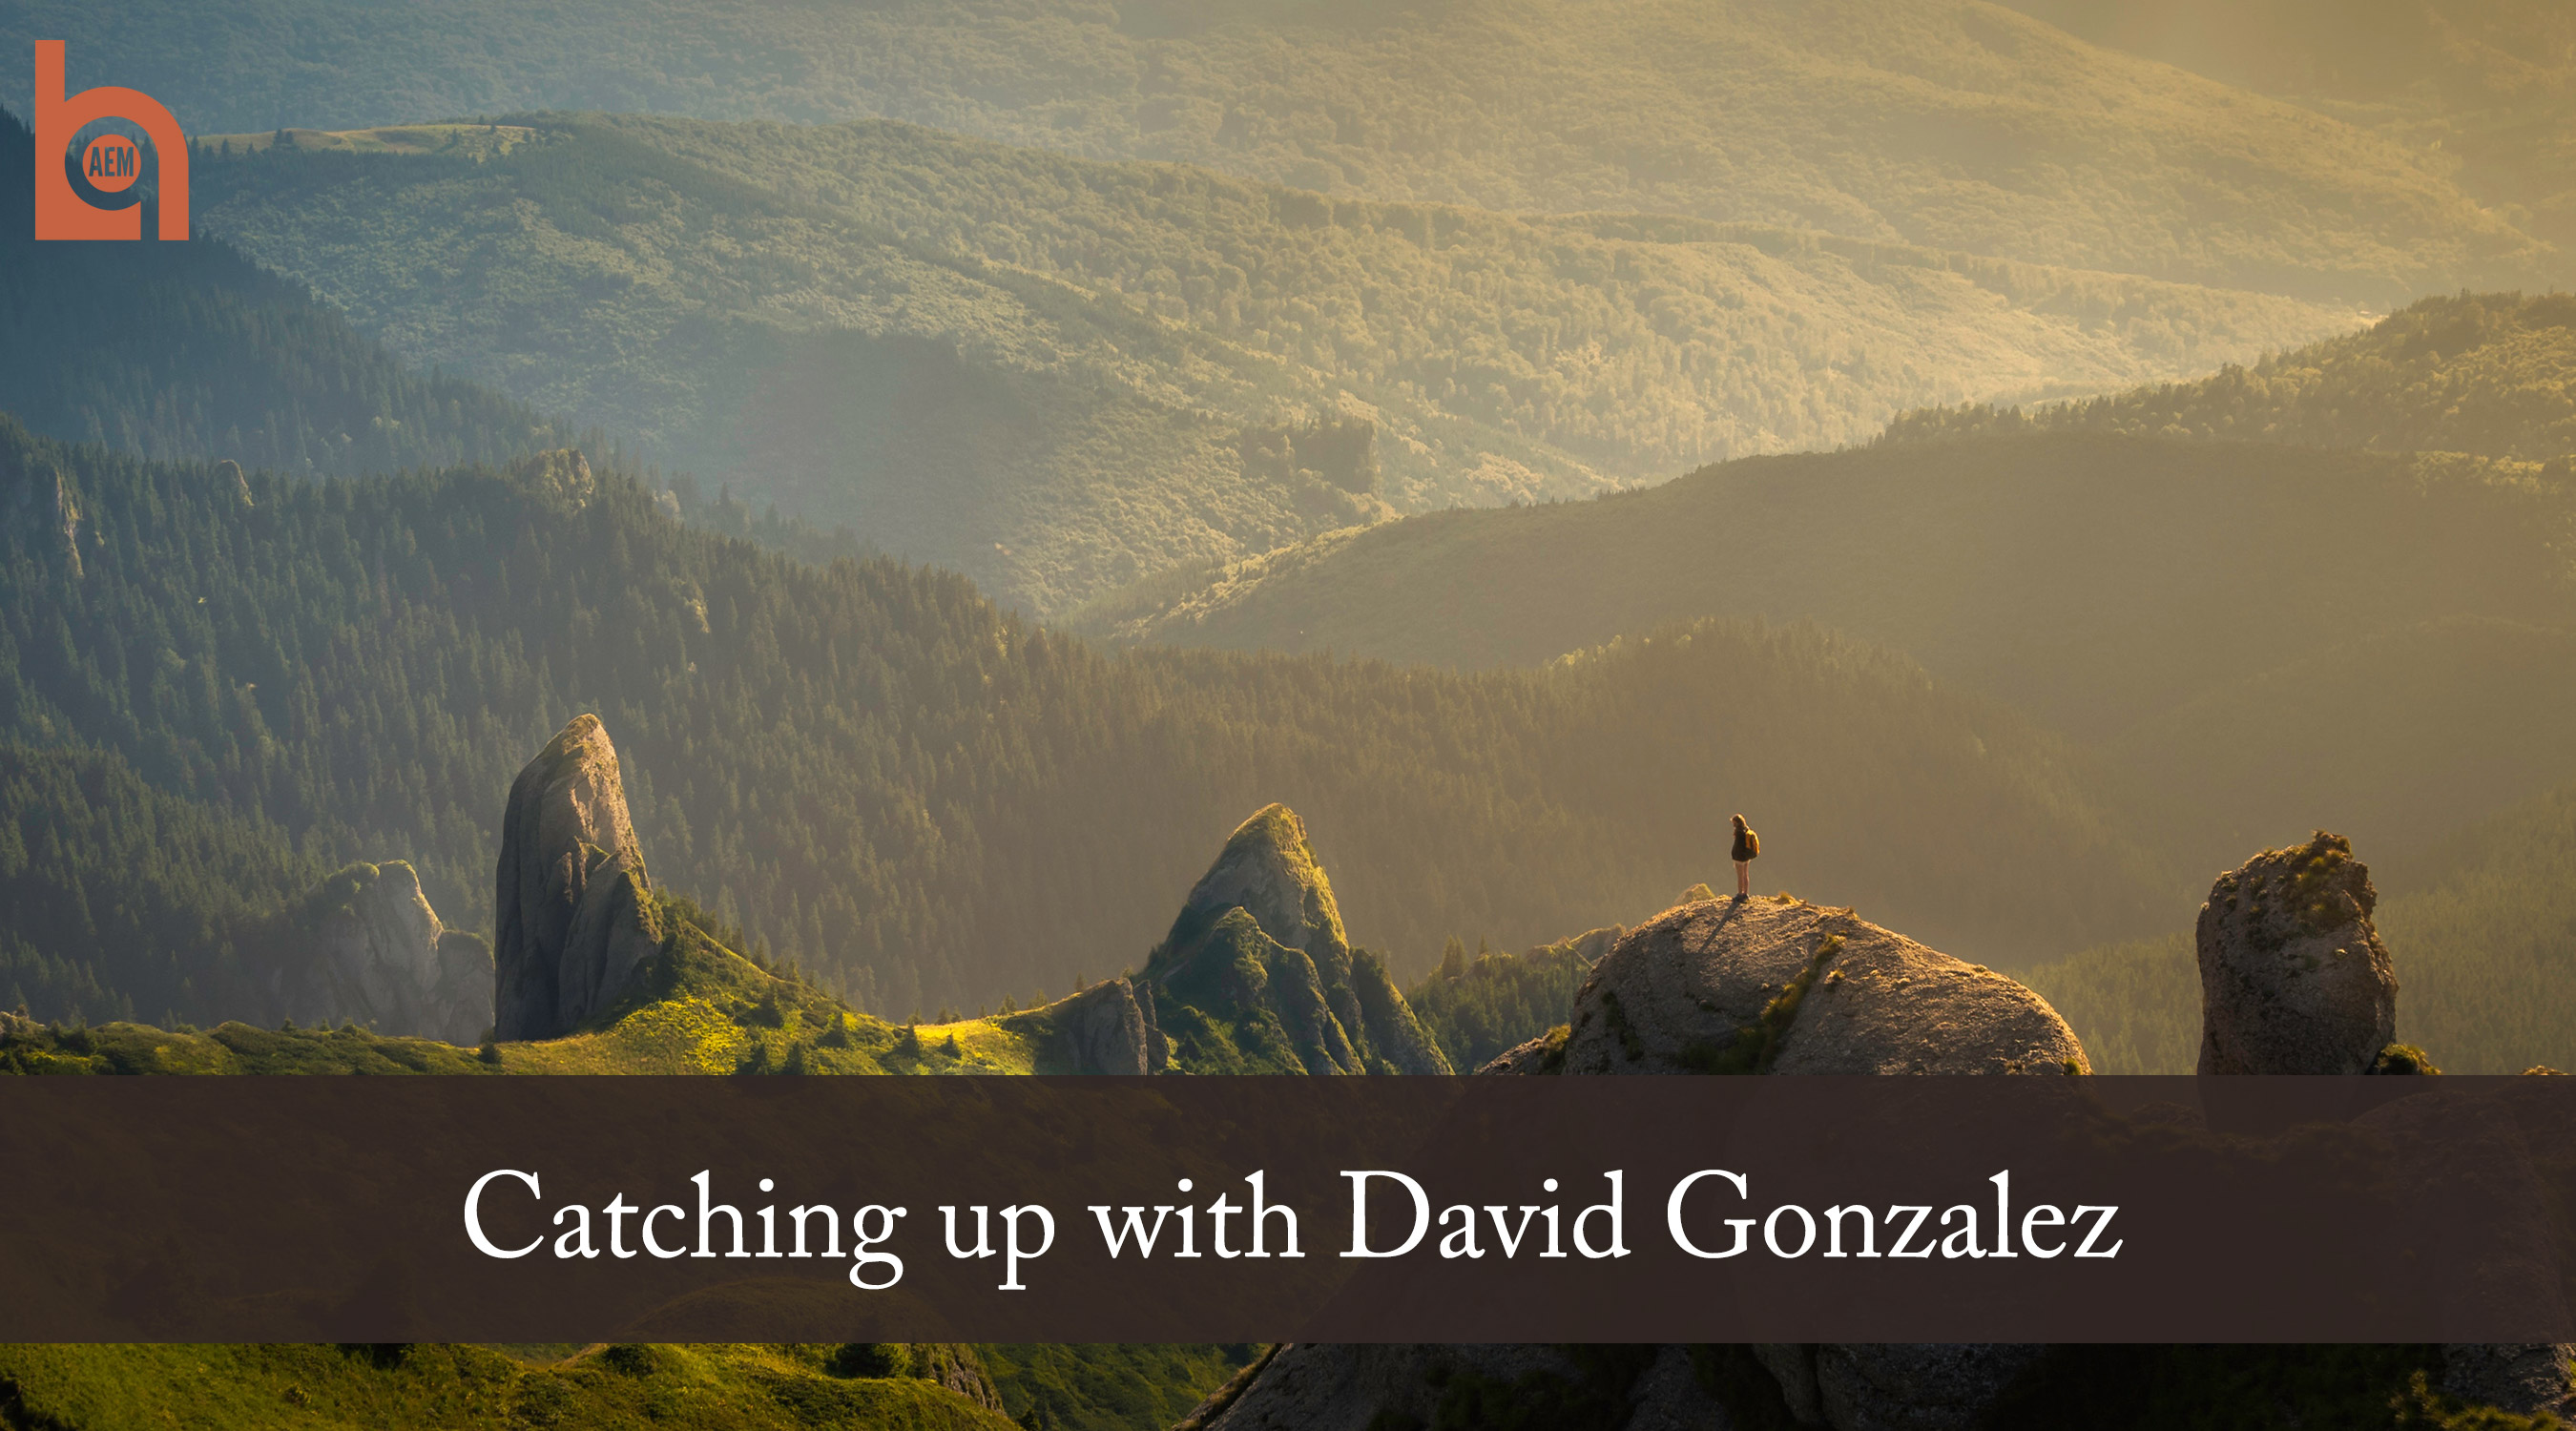 Catching up with David Gonzalez